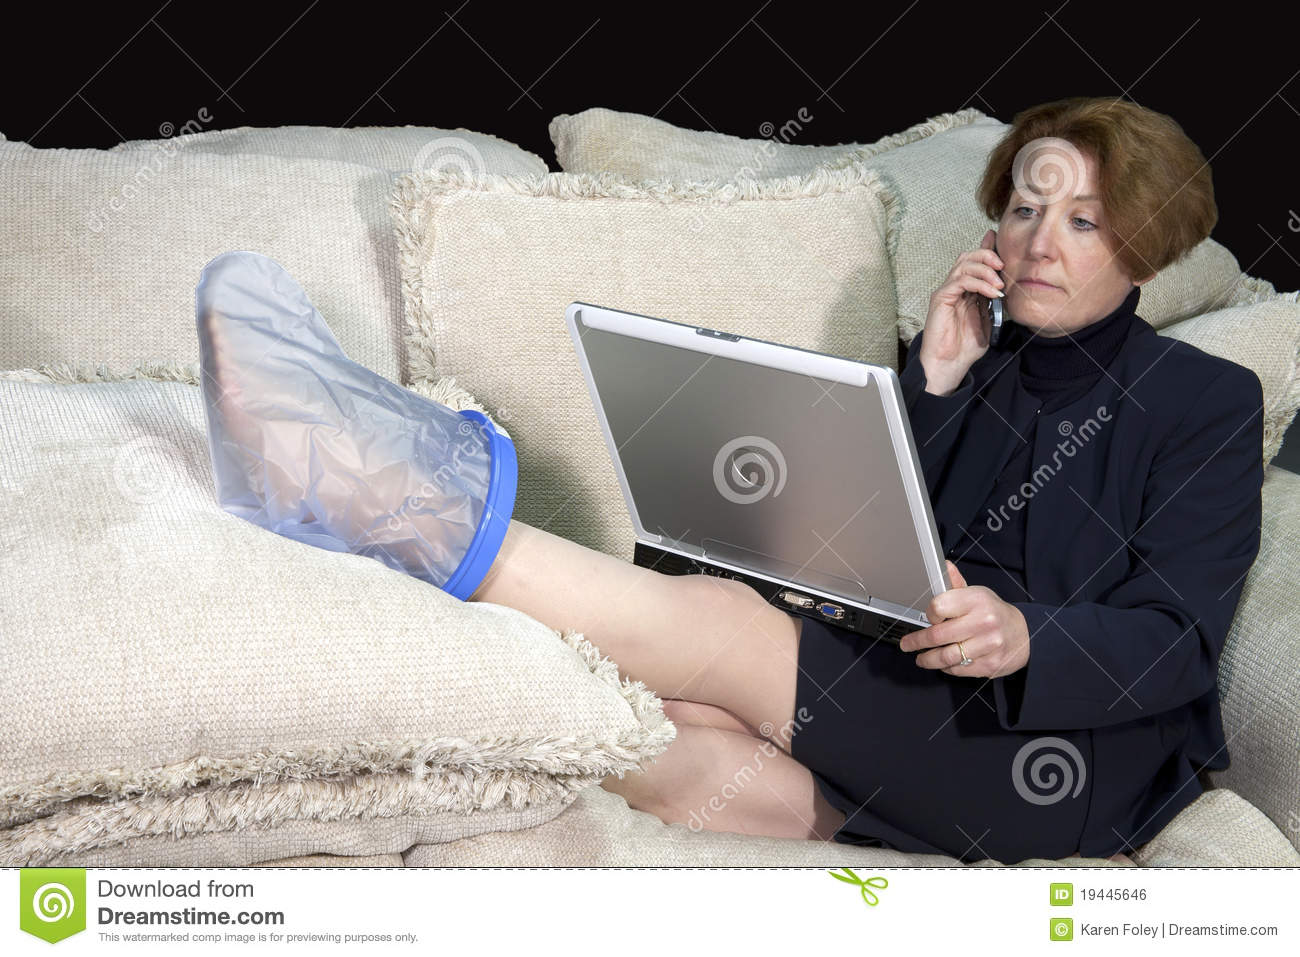 12 foot sofa black leather sets business woman with injury stock photo - image: 19445646